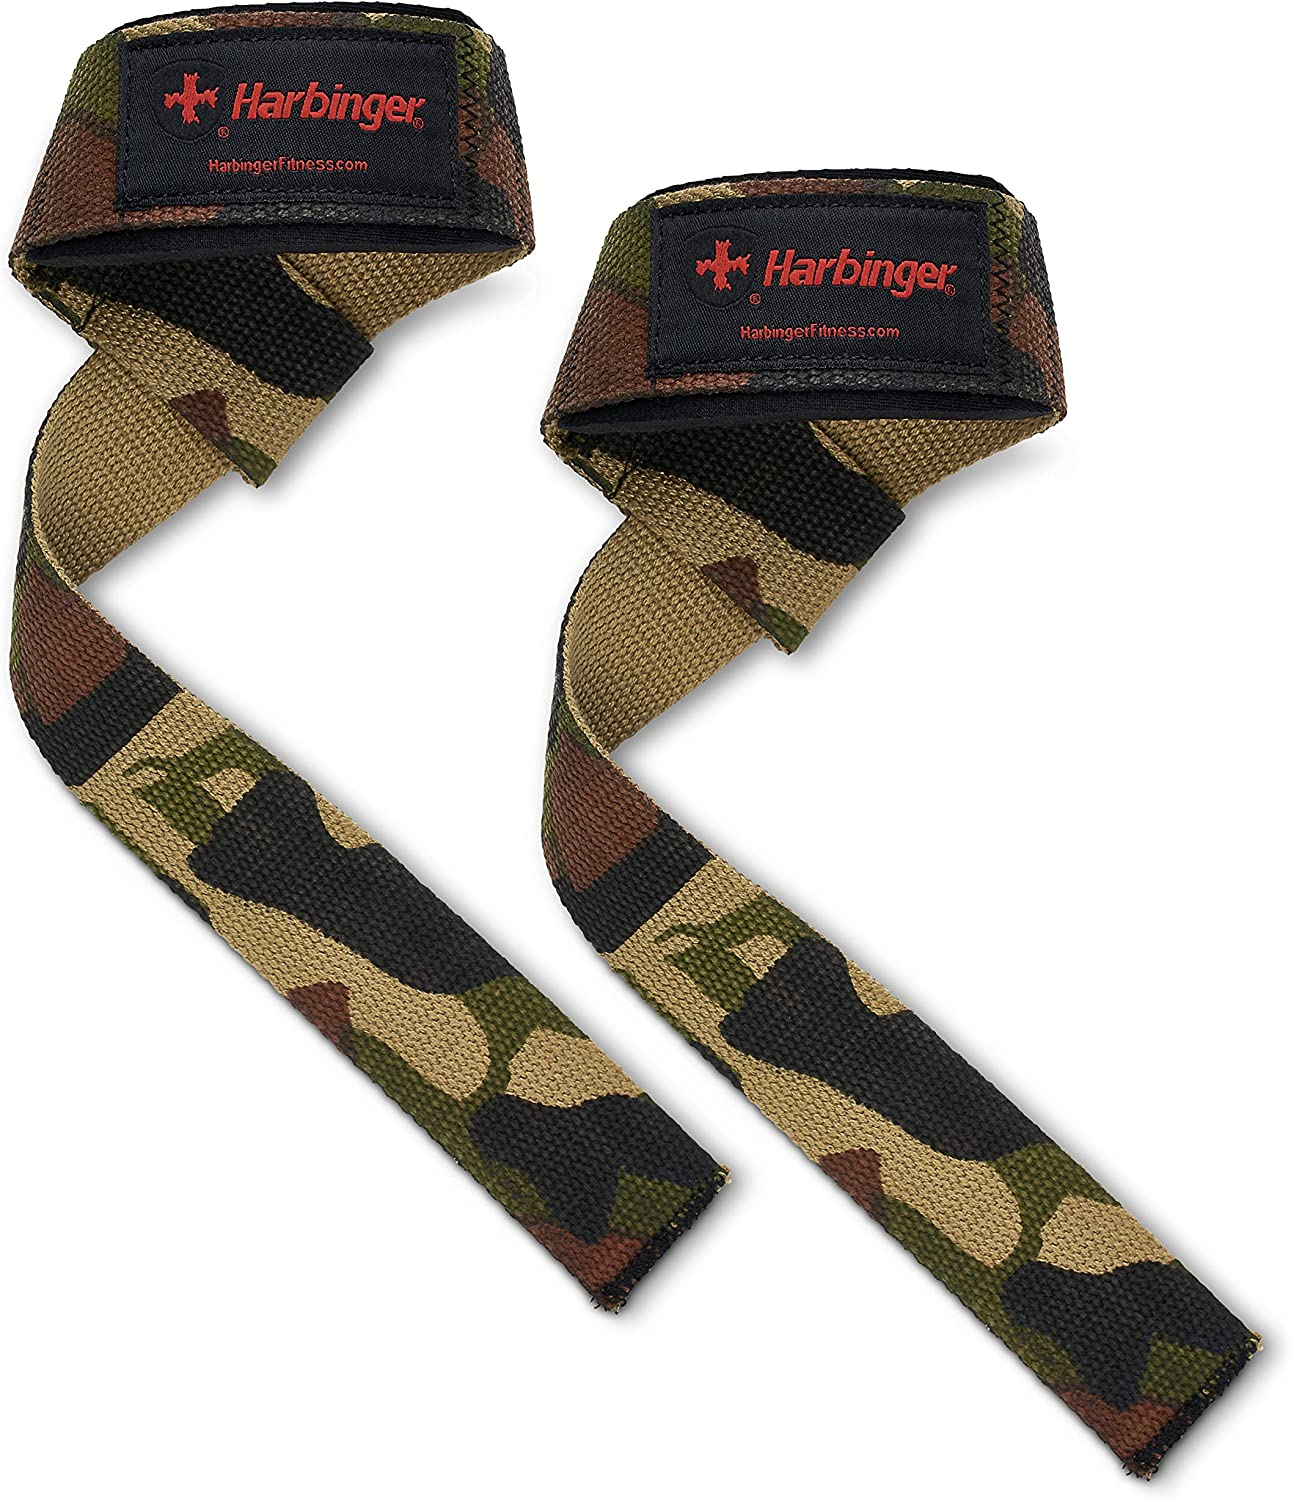 Harbinger Padded Cotton Lifting Straps with NeoTek Cushioned Wrist Pair